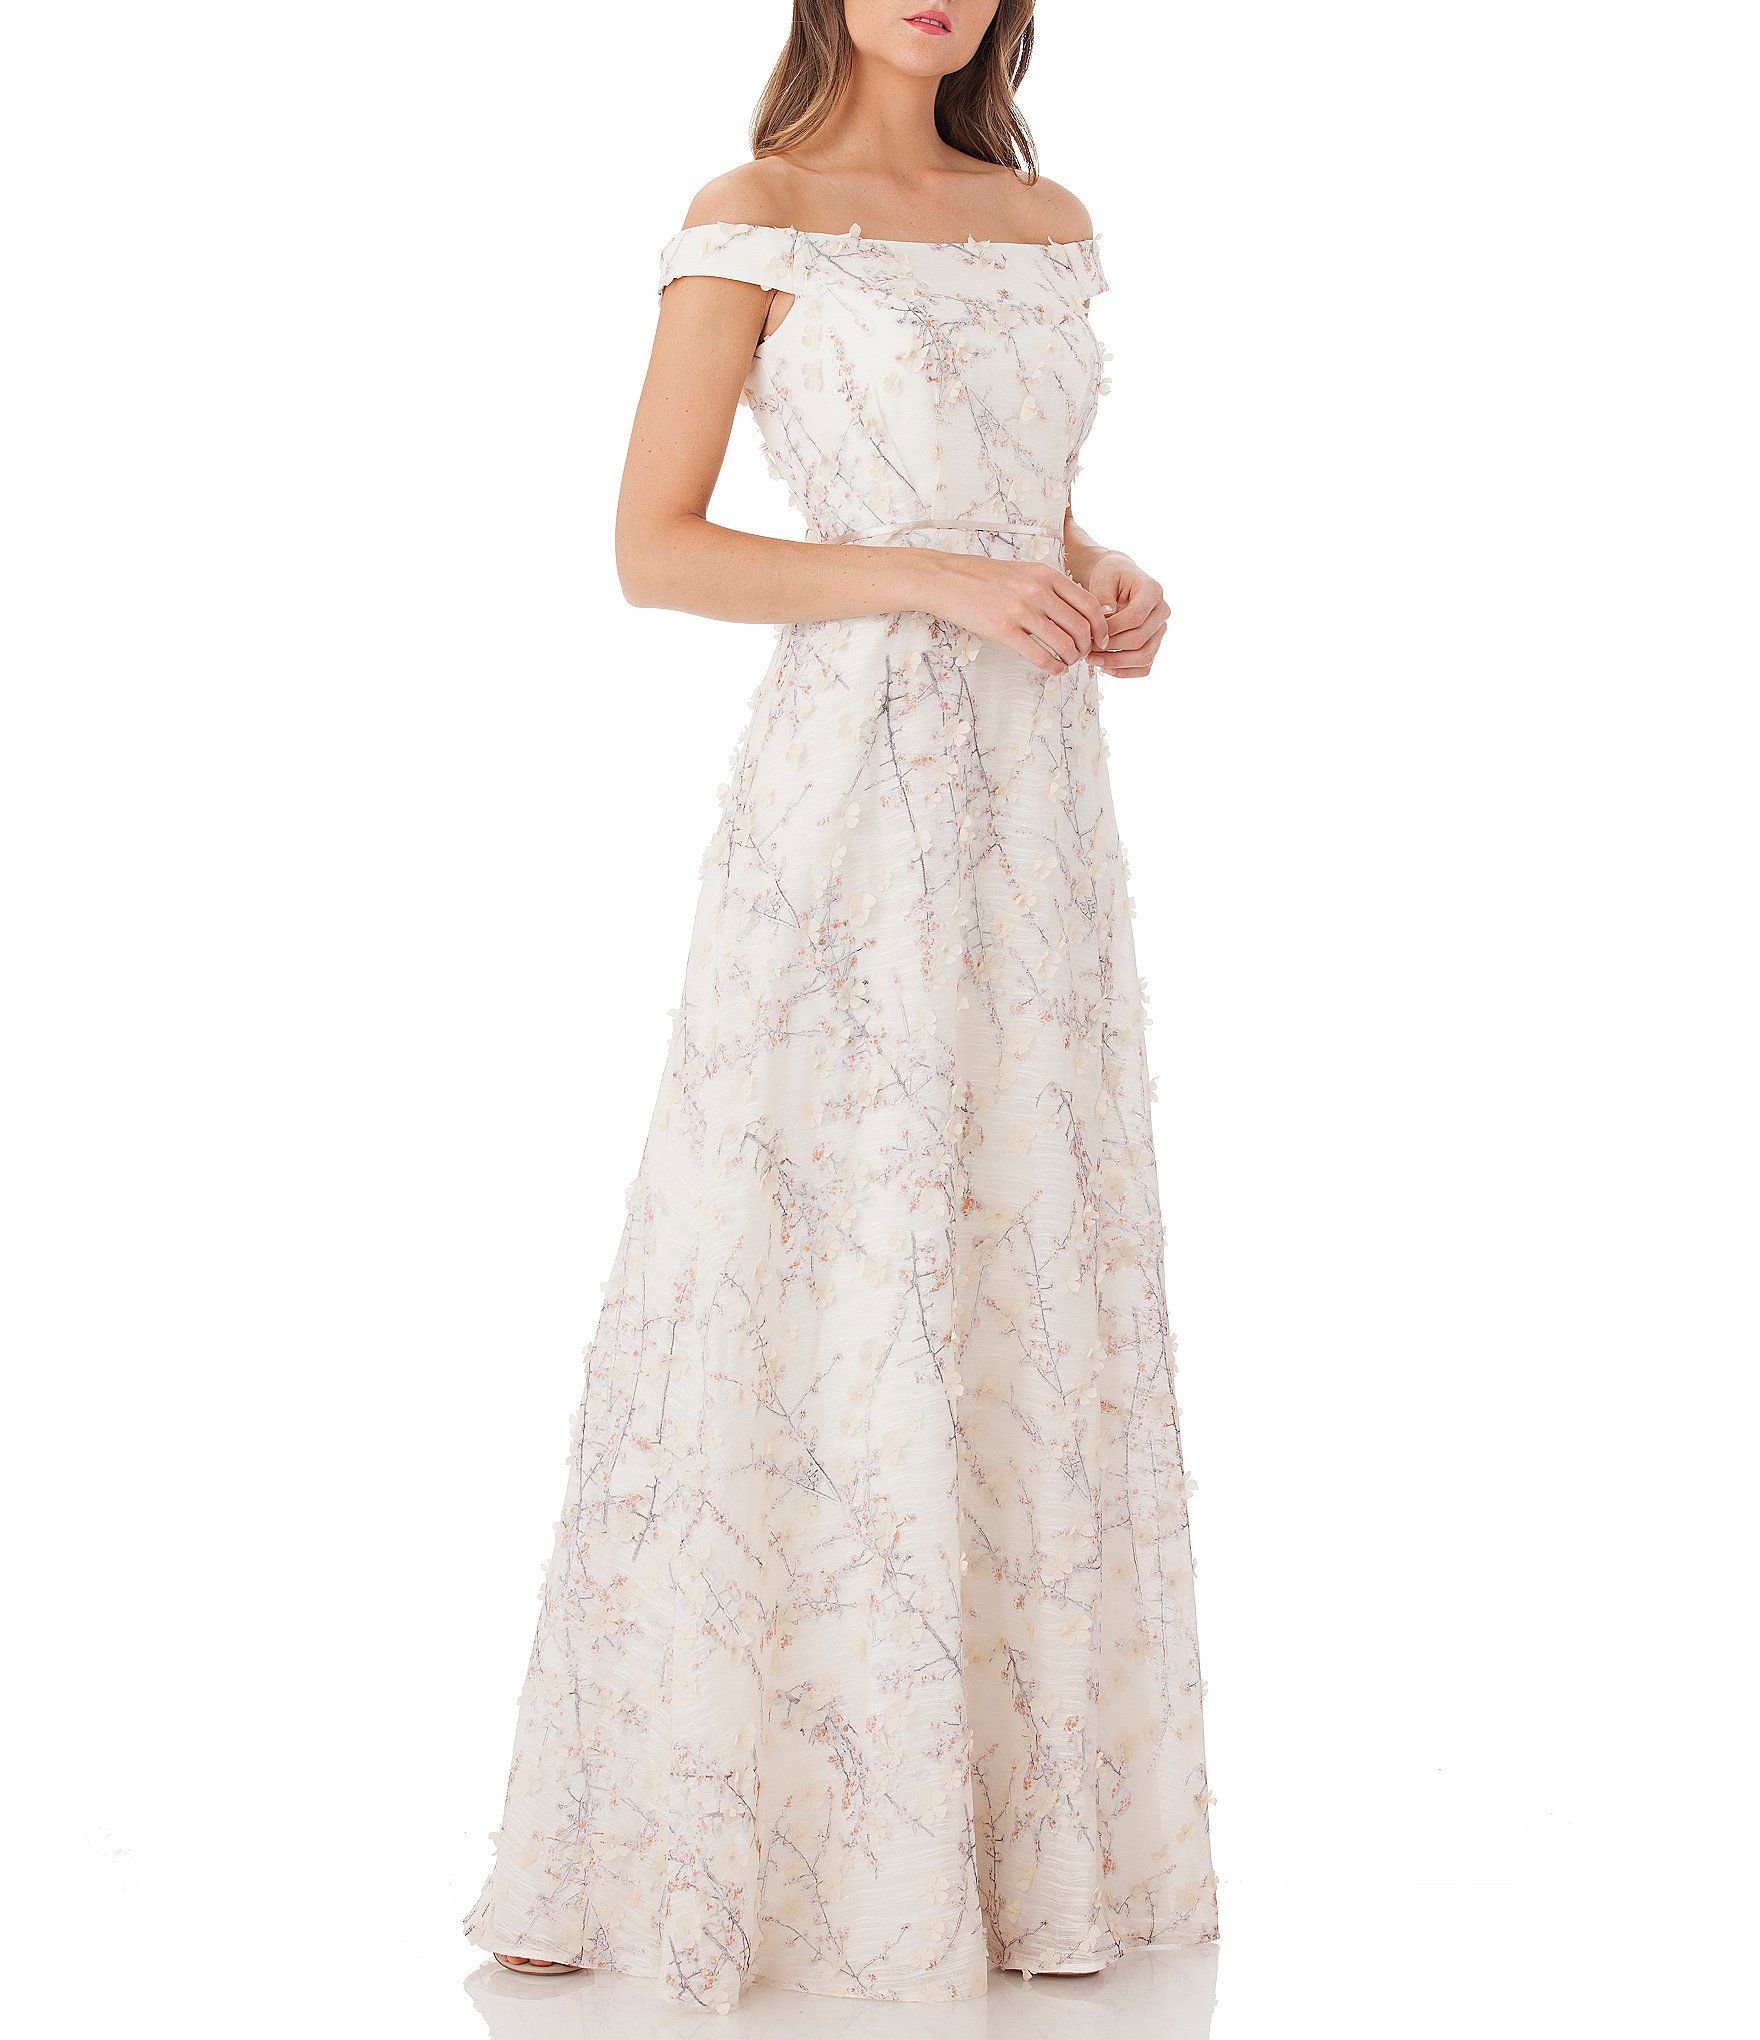 96a4ae92901 Shop for Carmen Marc Valvo Off the Shoulder Embroidered Gown at Dillards.com.  Visit Dillards.com to find clothing